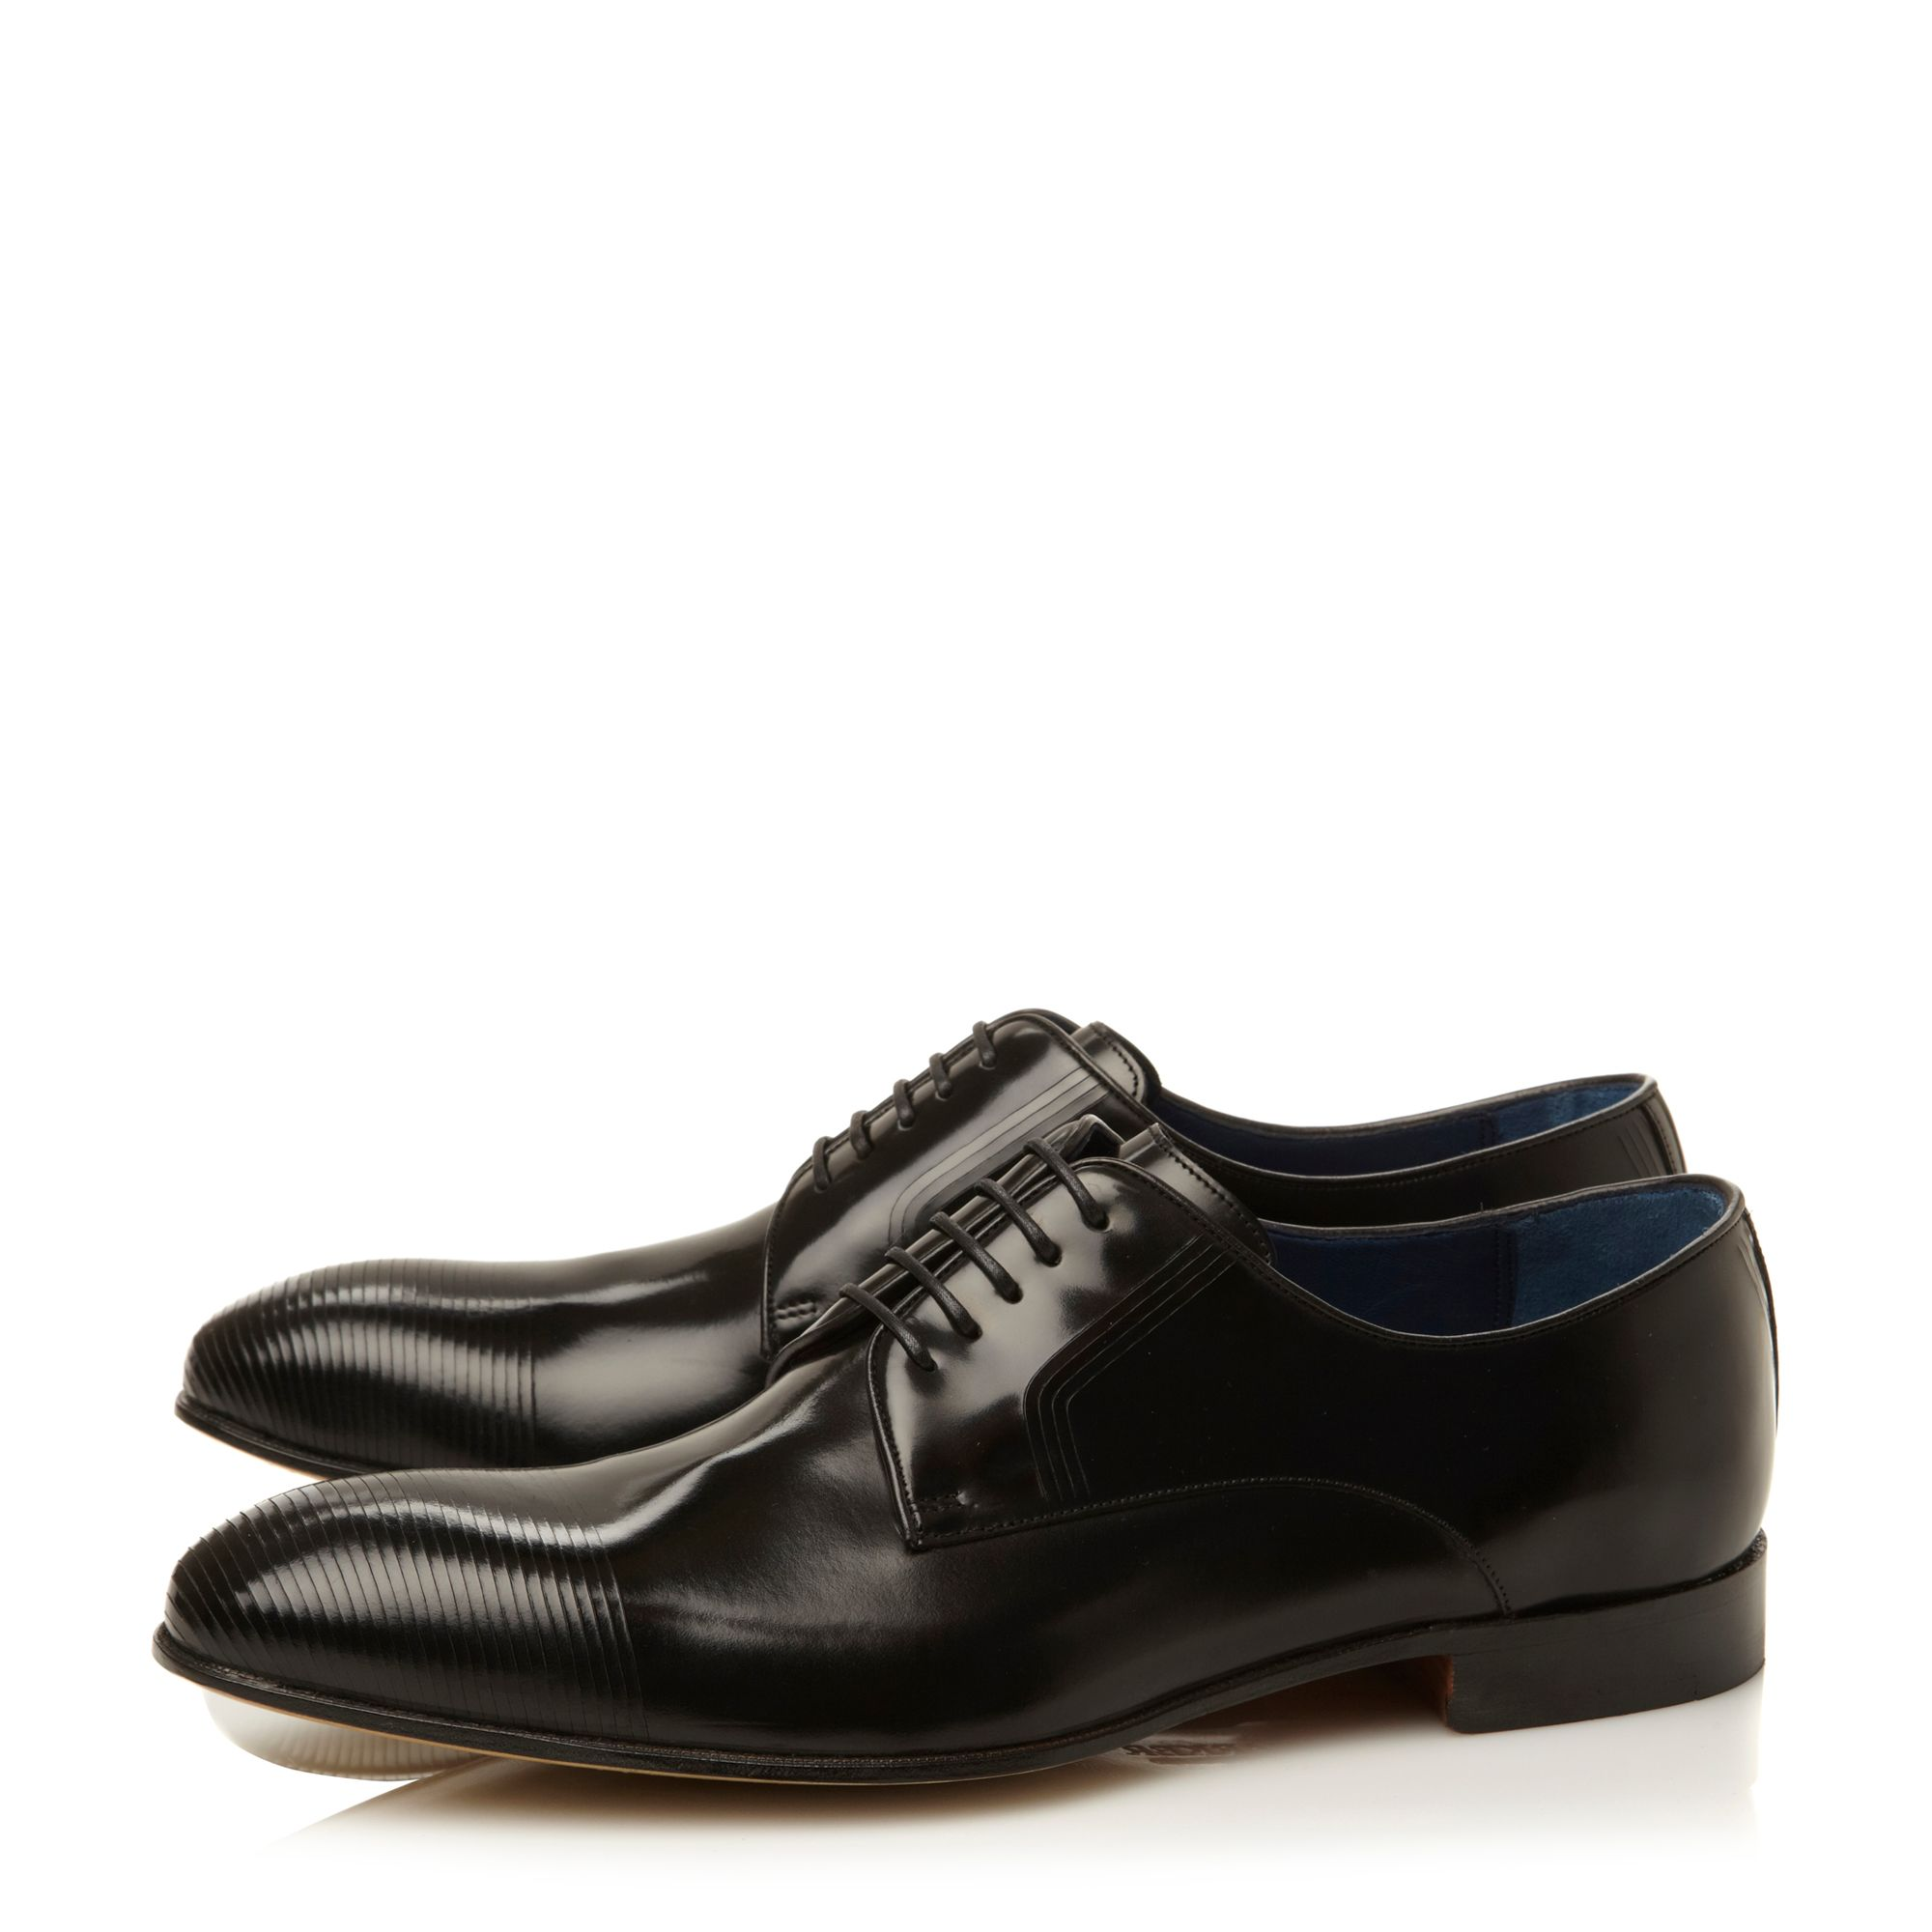 Marlowe lace up laser stripe gibson shoes